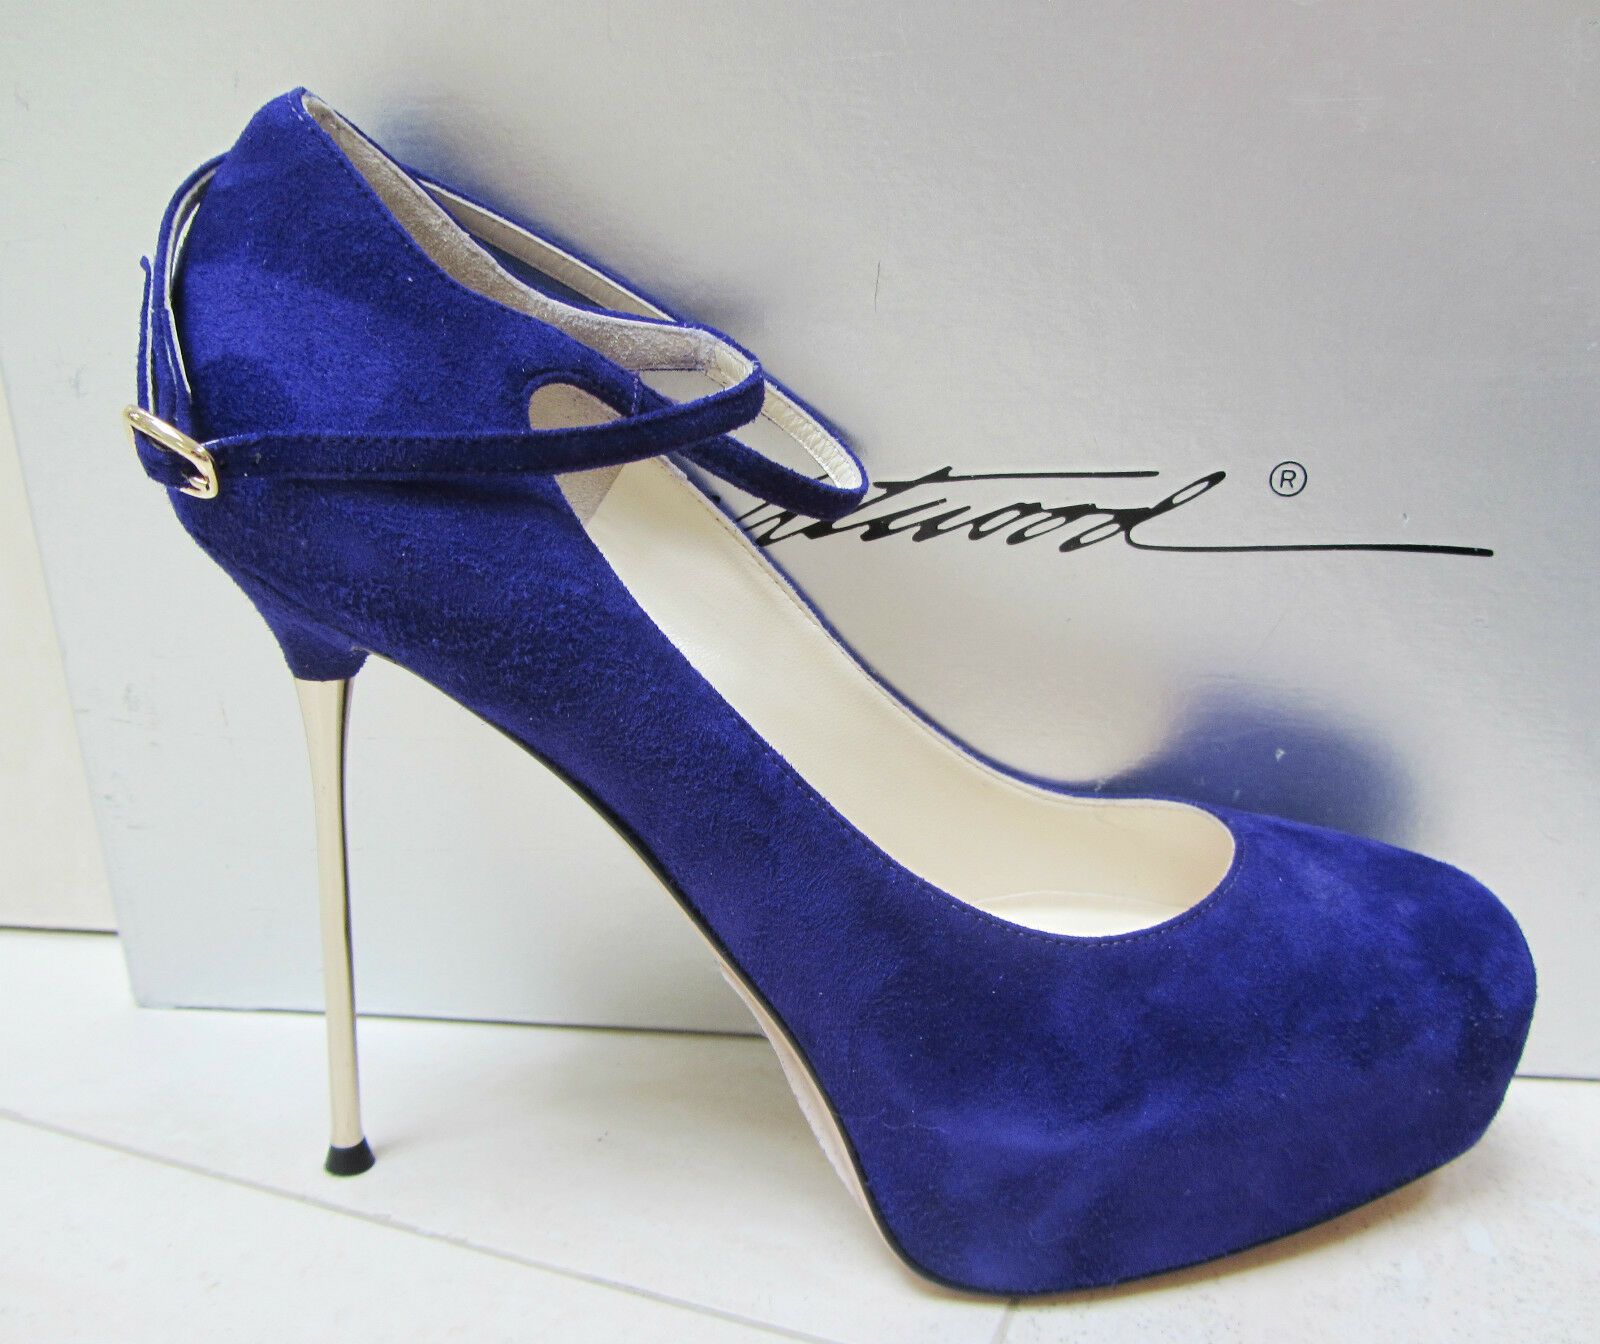 NIB BRIAN ATWOOD FOLLOW ME PLATFORM SPIKE HEEL PURPLE SUEDE PUMPS SHOES 39.5